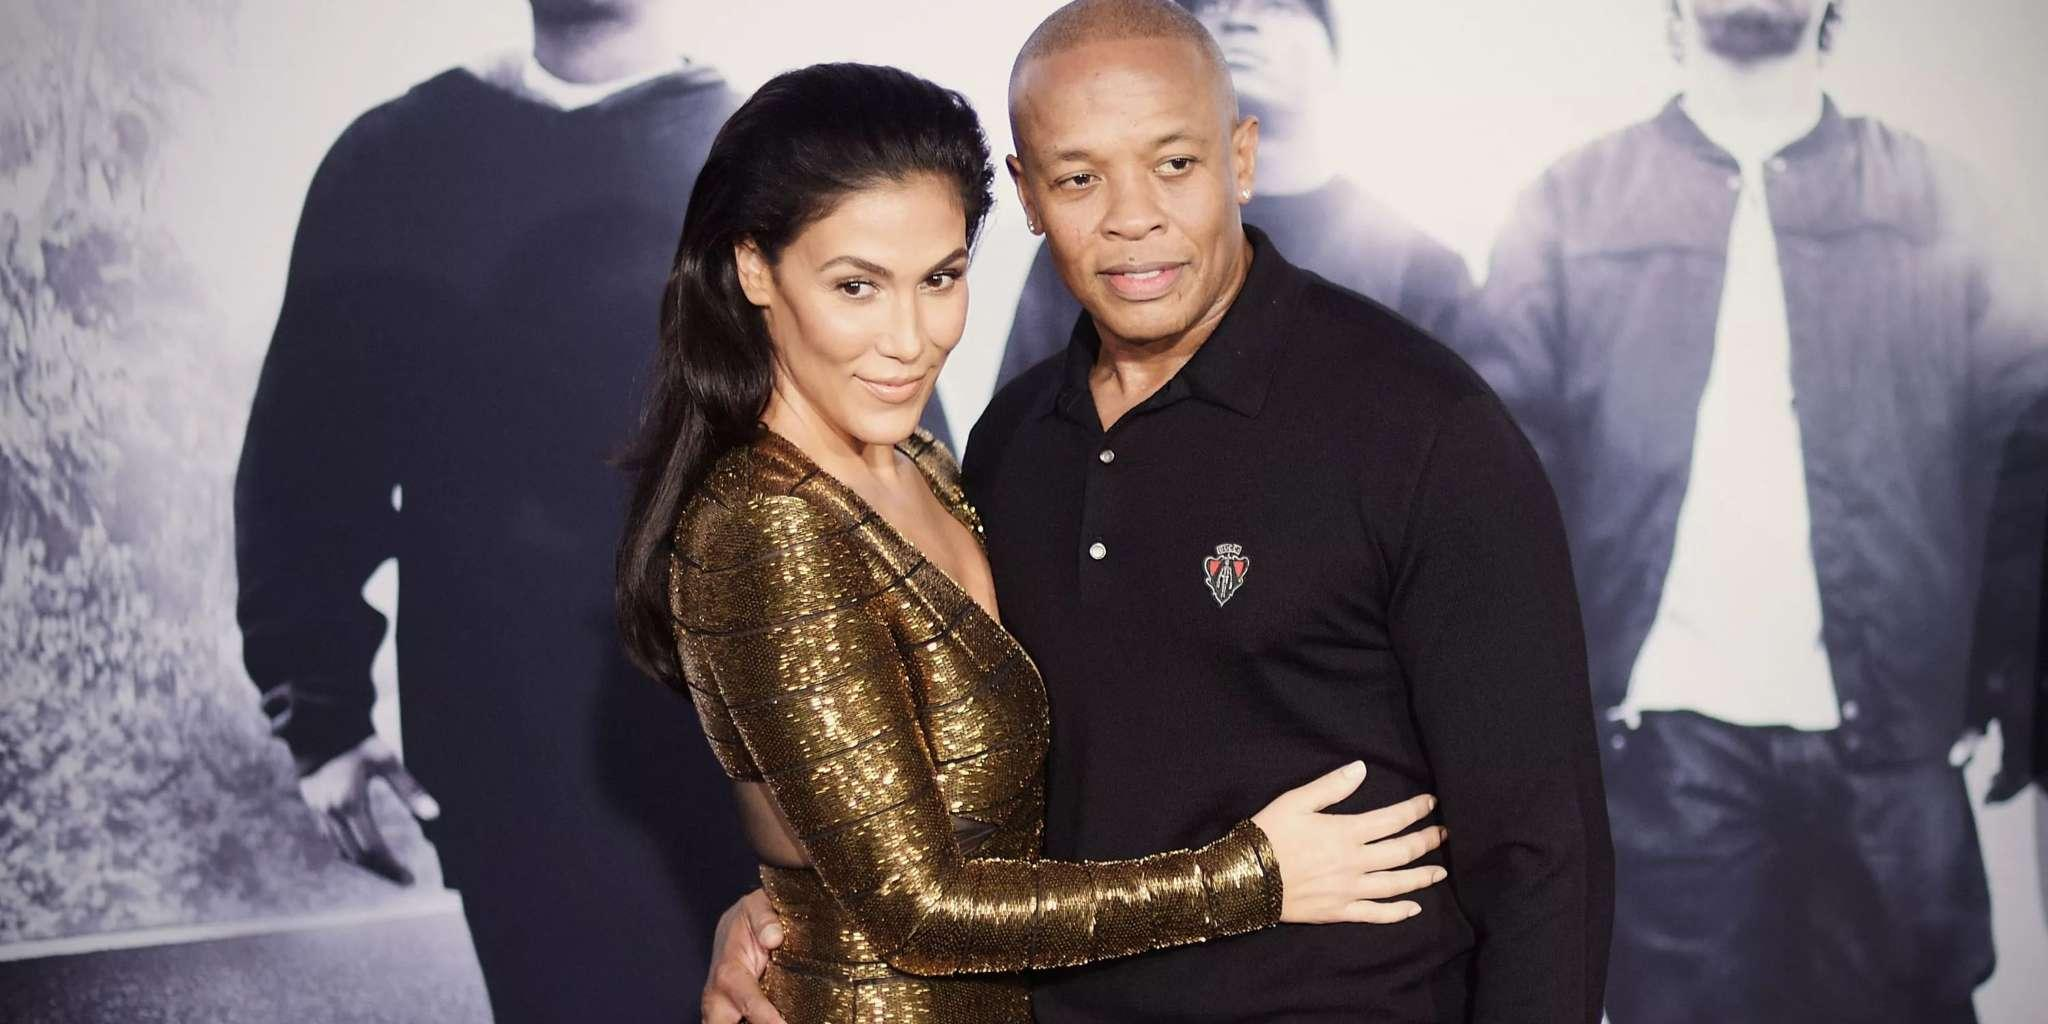 Dr. Dre's Wife, Nicole Reportedly Files For Divorce - Here Are The Details